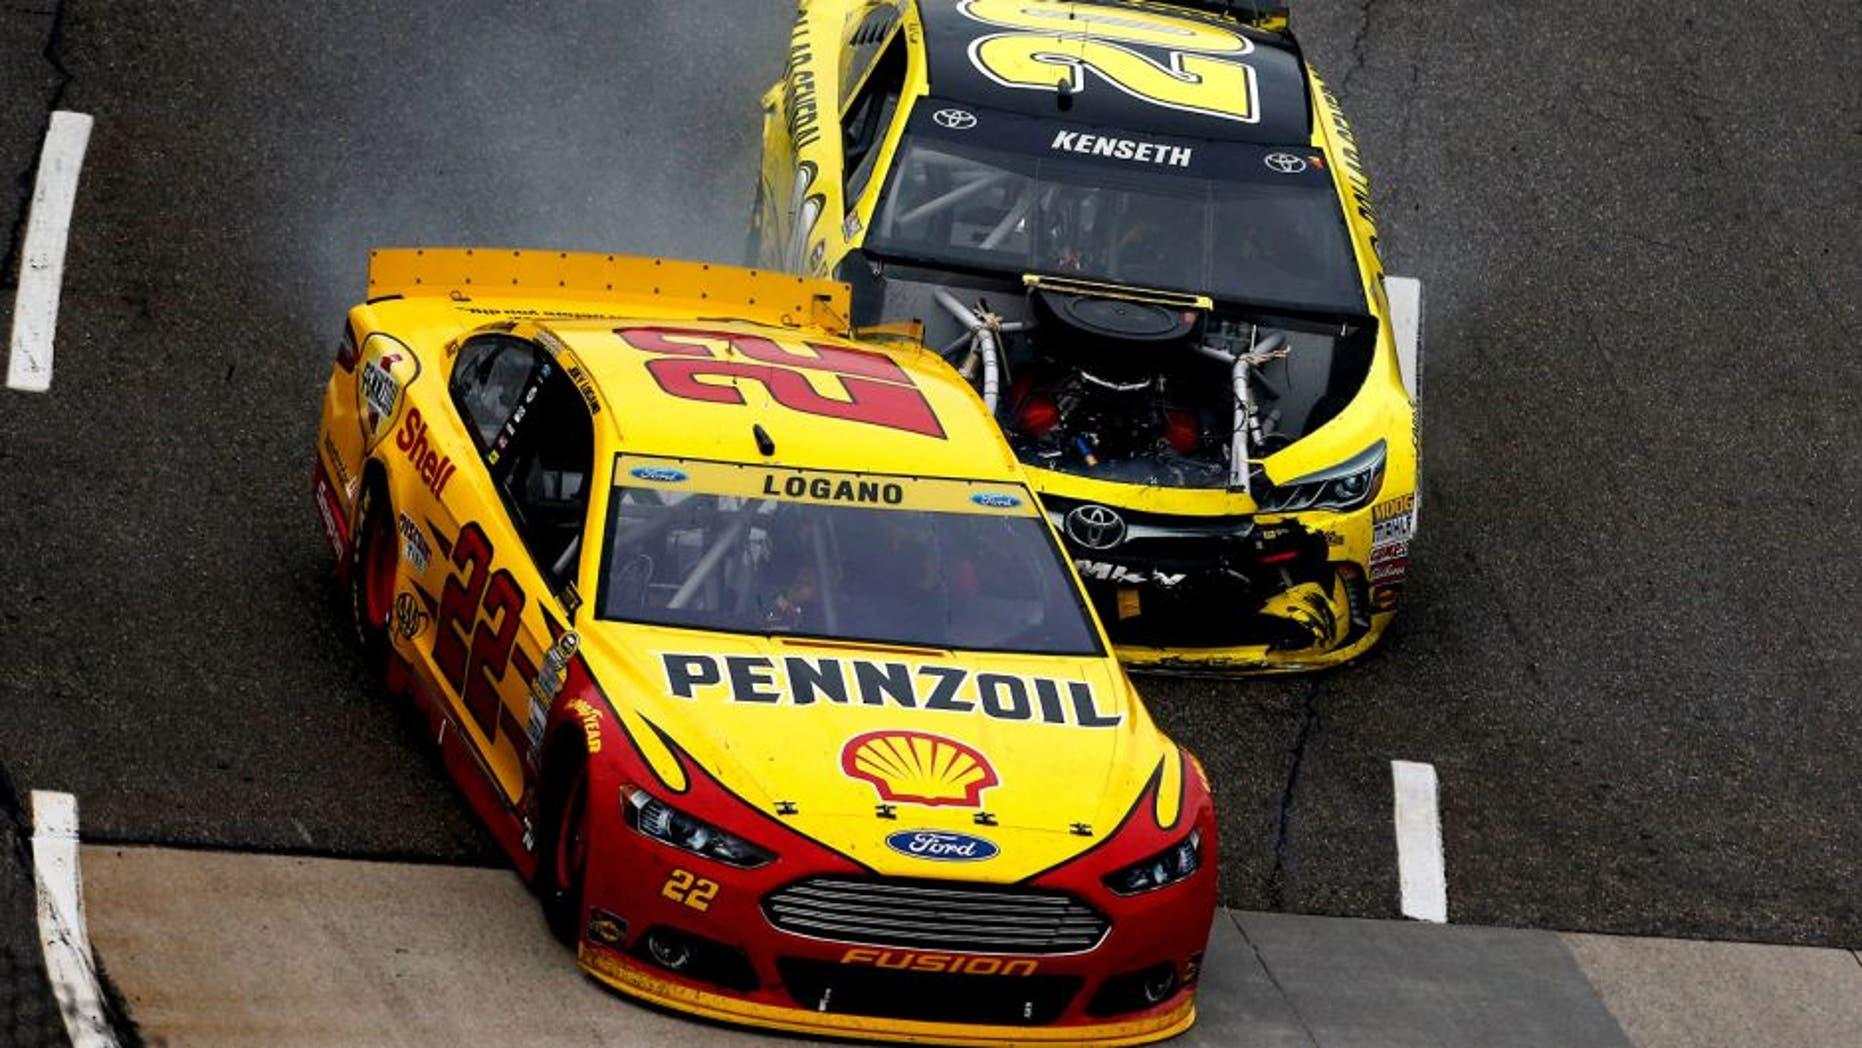 MARTINSVILLE, VA - NOVEMBER 01: Matt Kenseth, driver of the #20 Dollar General Toyota, crashes hits Joey Logano, driver of the #22 Shell Pennzoil Ford, during the NASCAR Sprint Cup Series Goody's Headache Relief Shot 500 at Martinsville Speedway on November 1, 2015 in Martinsville, Virginia. (Photo by Jeff Zelevansky/Getty Images)